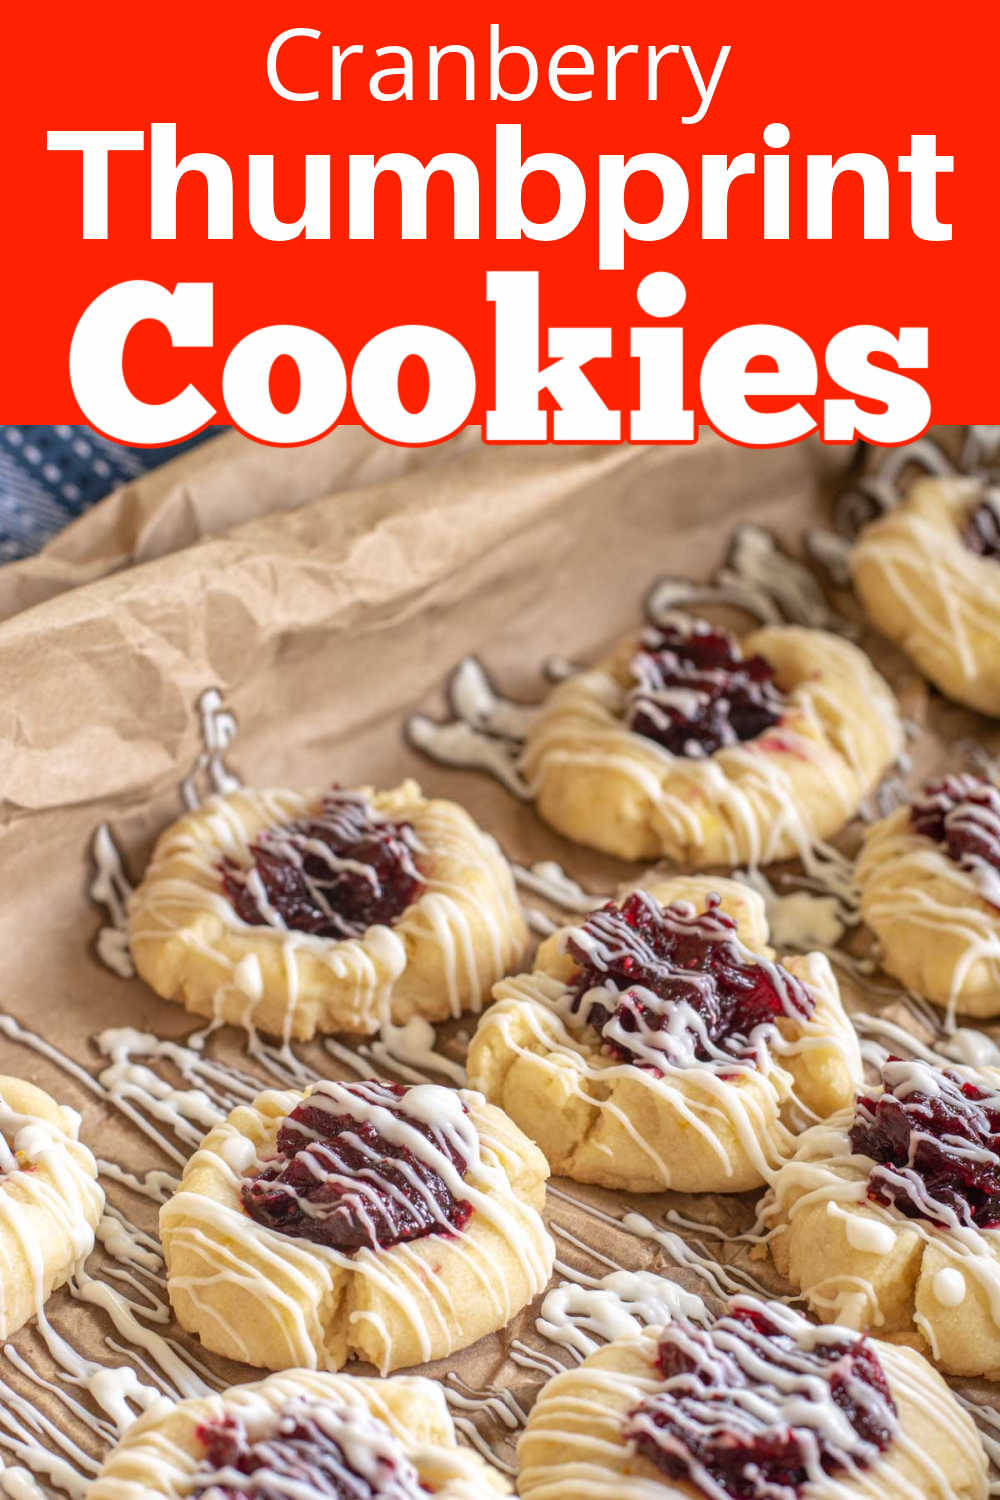 Cranberry Bliss Thumbprint Cookies